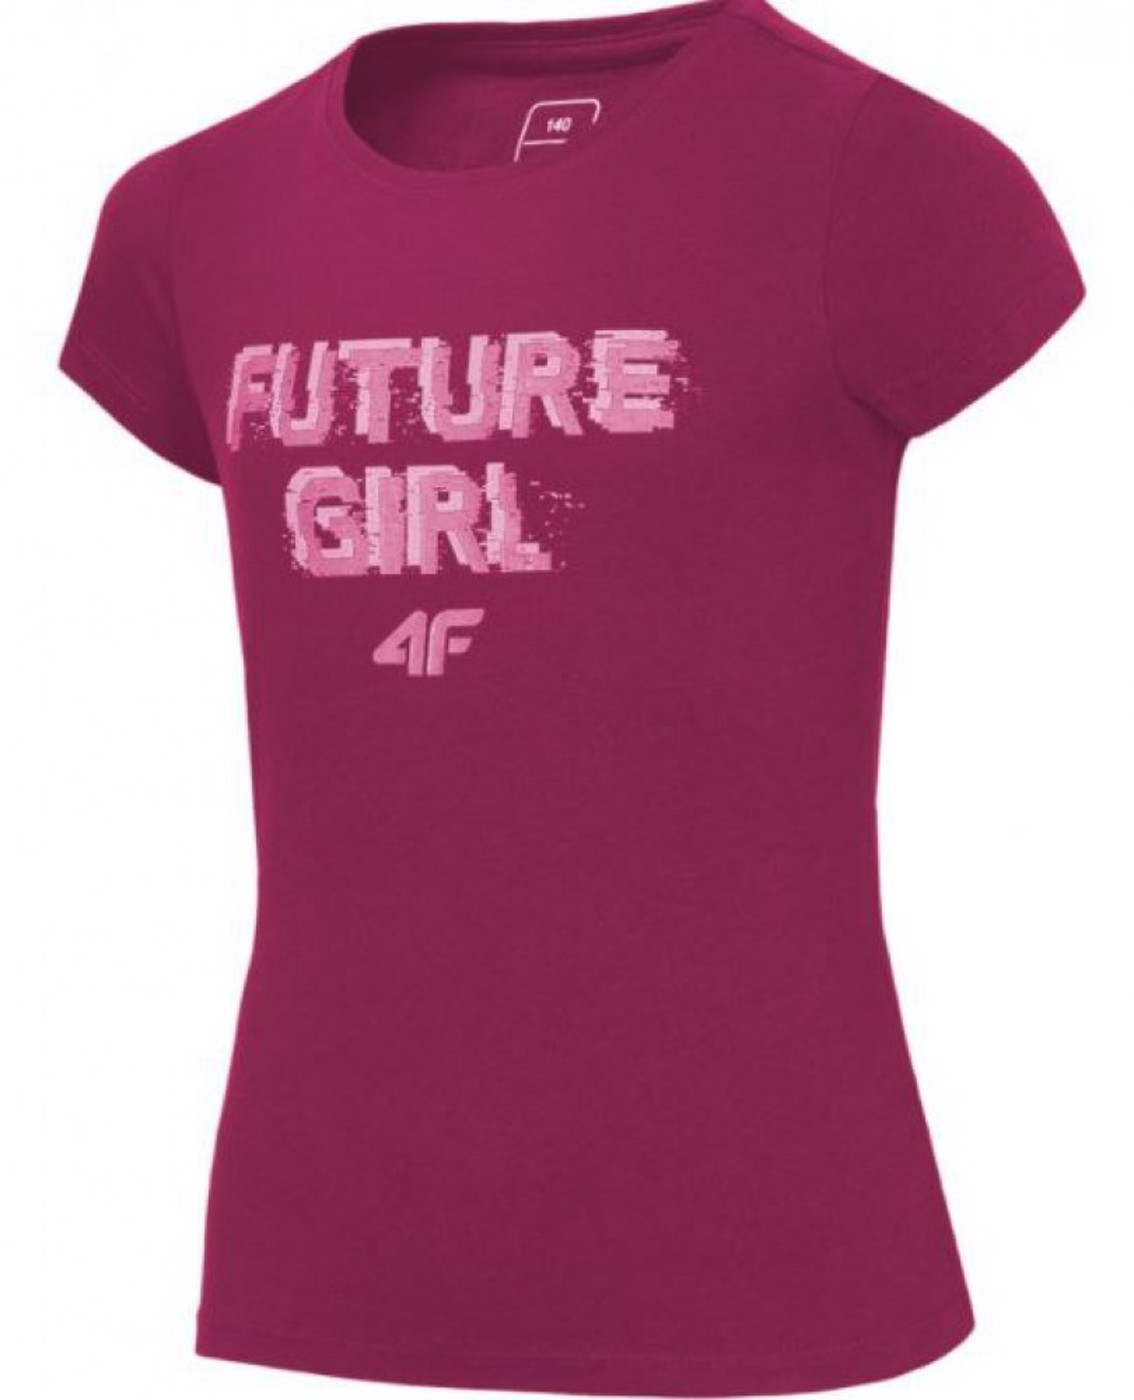 4F Girls T-Shirt Future - Kinder